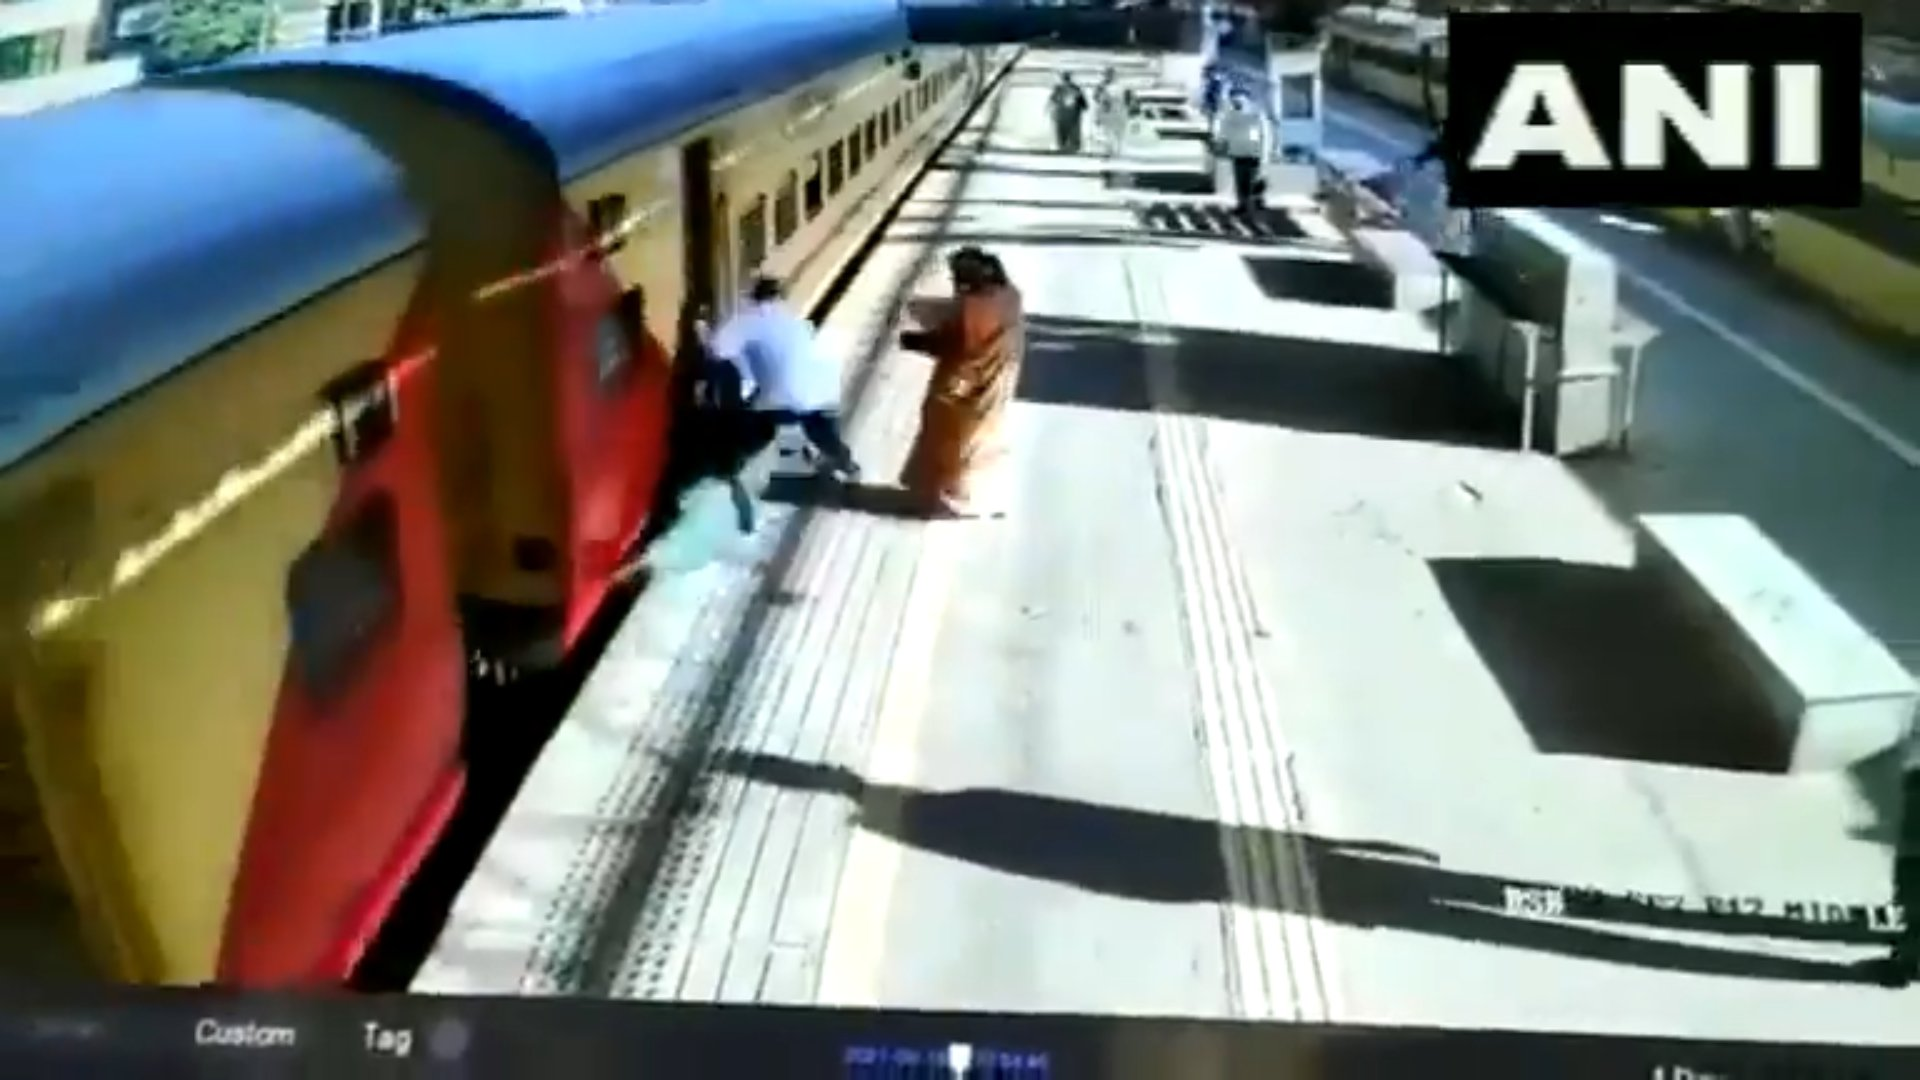 Woman fell after slipping on moving train